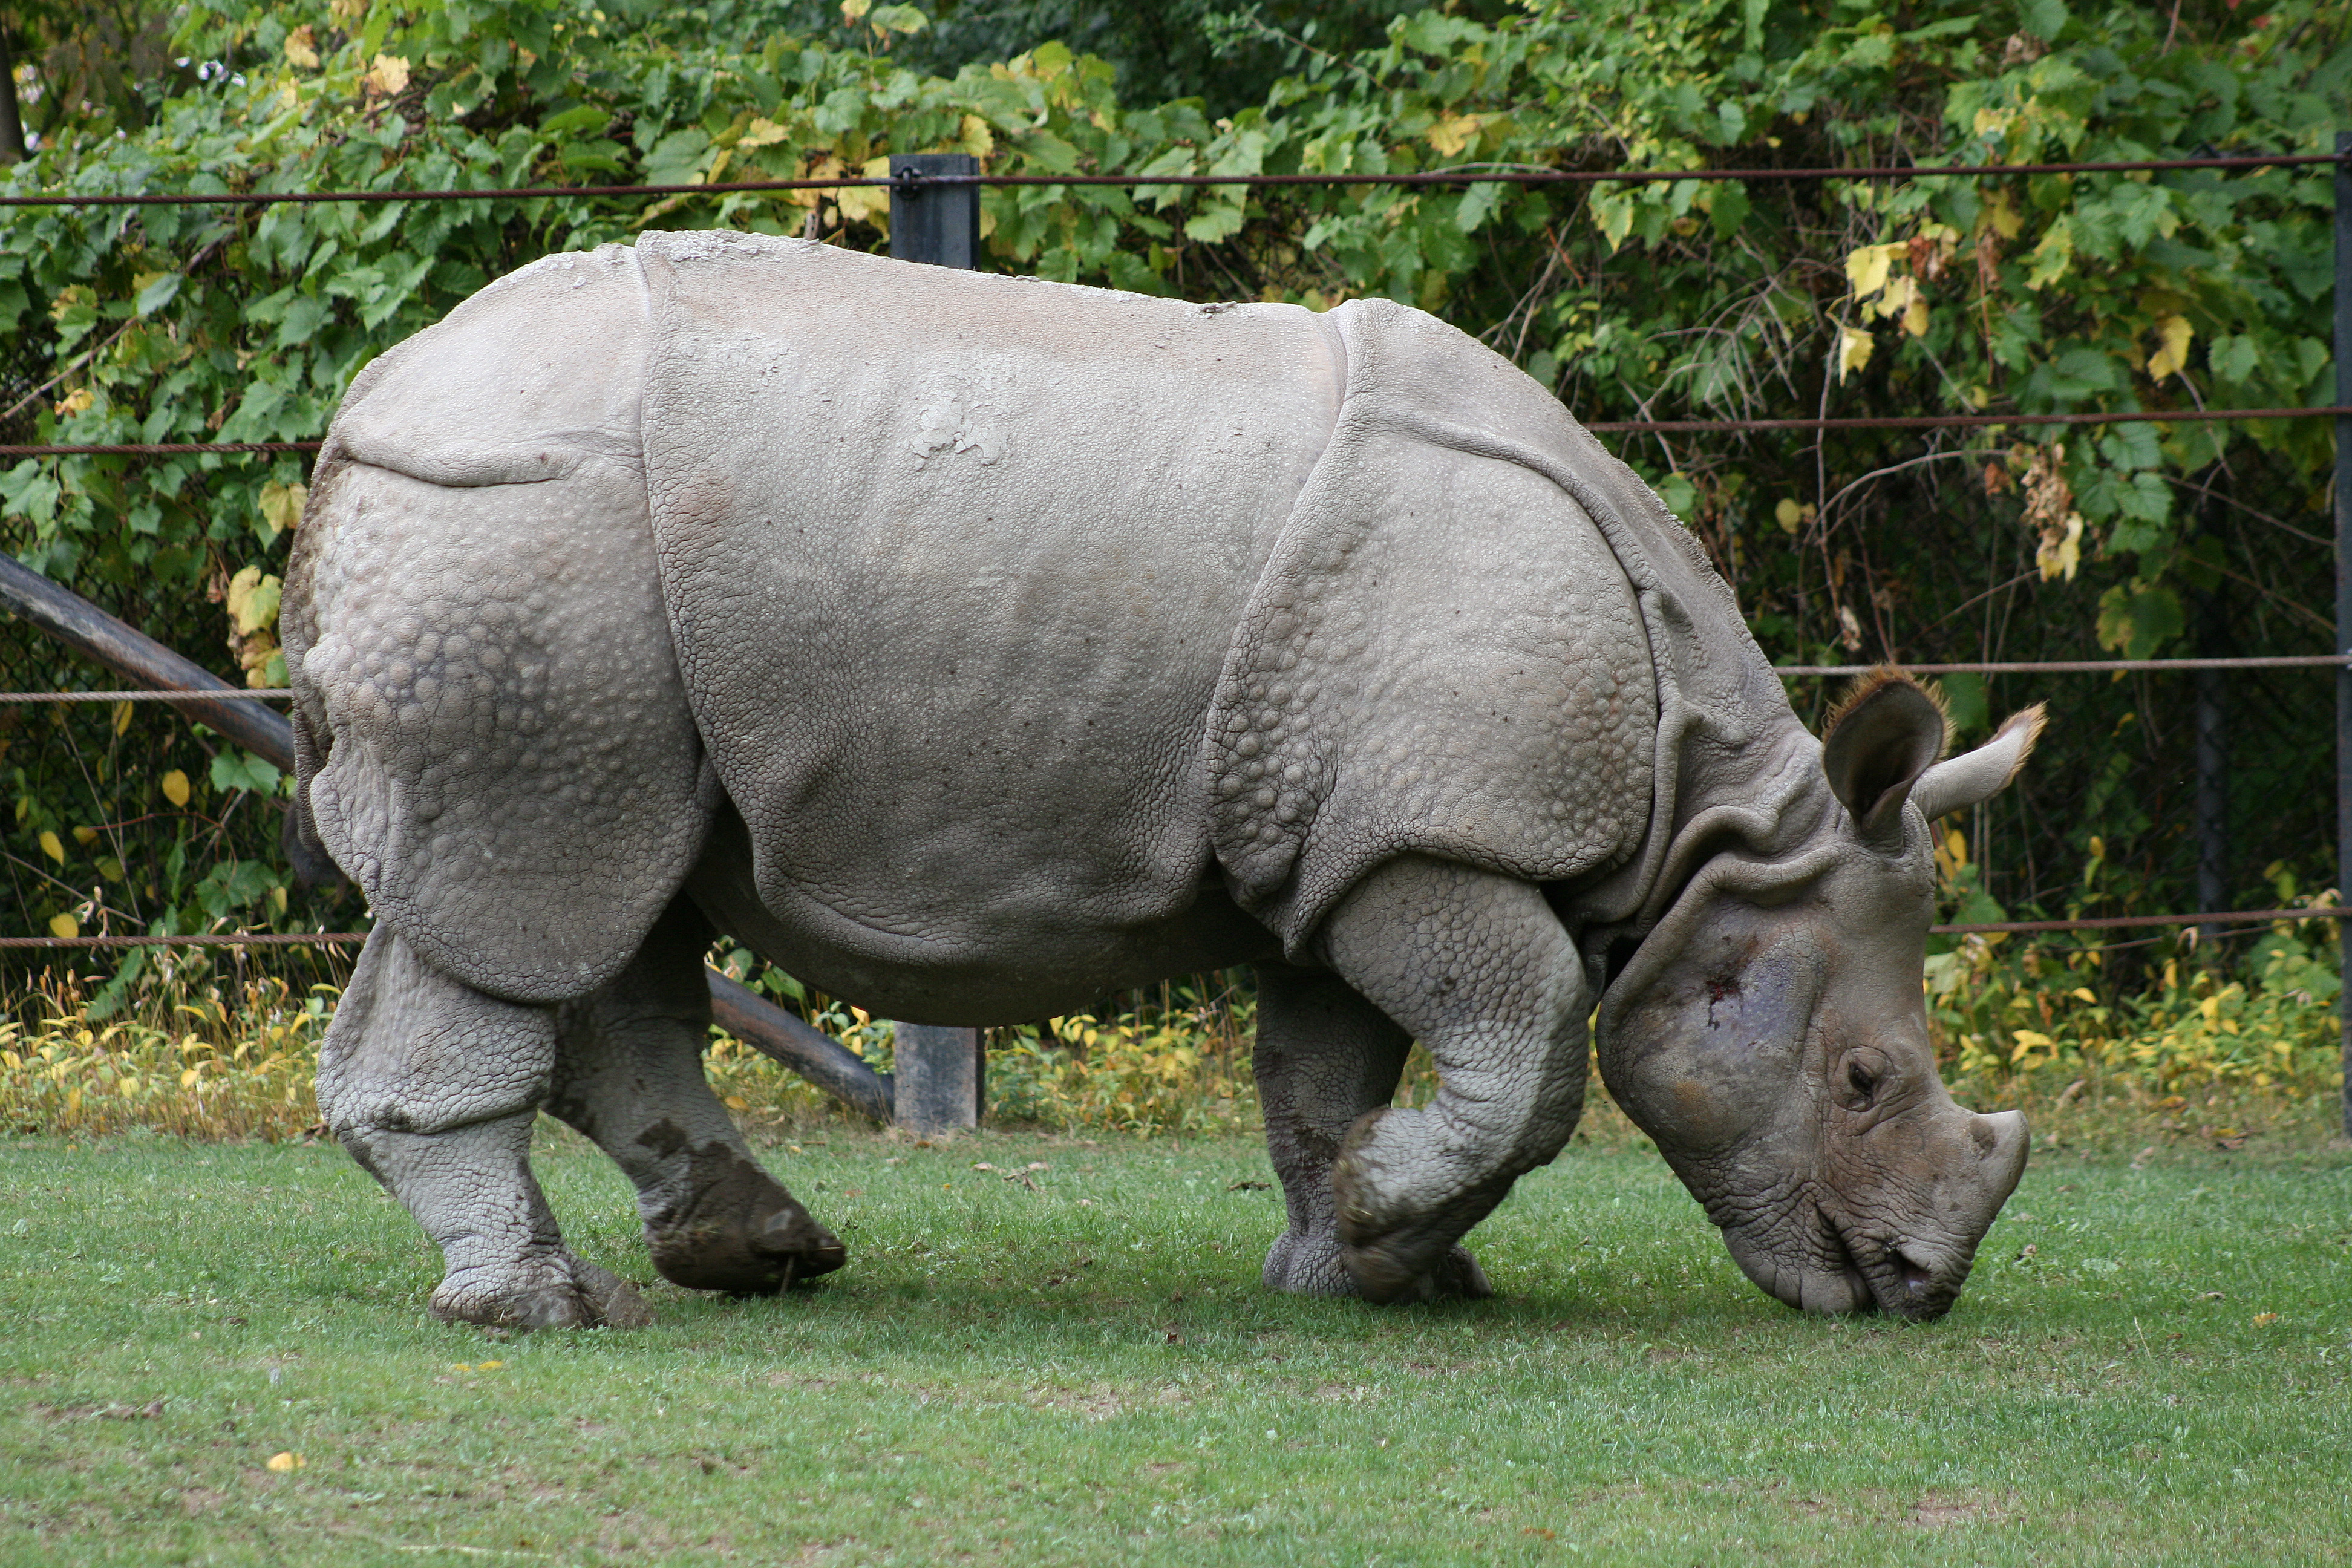 https://upload.wikimedia.org/wikipedia/commons/3/3a/Indian_Rhino_%28Rhinoceros_unicornis%291_-_Relic38.jpg